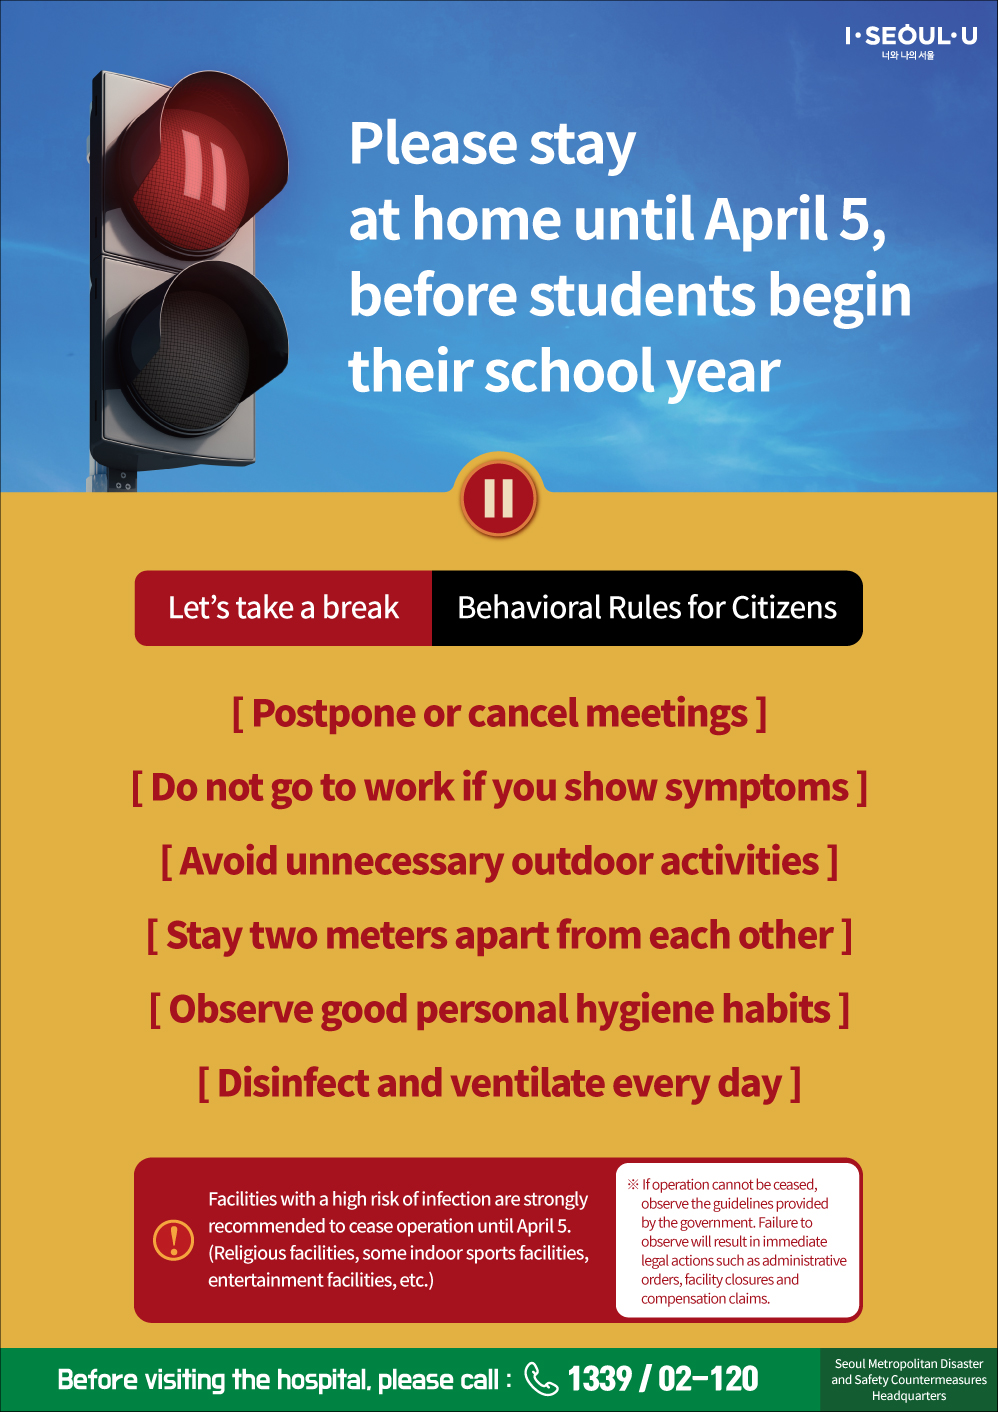 Please stay  at home until April 5,  before students begin  their school year Let's take a break Behavioral Rules for Citizens [ Postpone or cancel meetings ] [ Do not go to work if you show symptoms ] [ Avoid unnecessary outdoor activities ] [ Stay two meters apart from each other ] [ Observe good personal hygiene habits ] [ Disinfect and ventilate every day ] Facilities with a high risk of infection are strongly  recommended to cease operation until April 5.  (Religious facilities, some indoor sports facilities,  entertainment facilities, etc.) ※ If operation cannot be ceased,        observe the guidelines provided        by the government. Failure to        observe will result in immediate        legal actions such as administrative        orders, facility closures and        compensation claims. Before visiting the hospital, please call : 1339 / 02-120 Seoul Metropolitan Disaster and Safety Countermeasures Headquarters